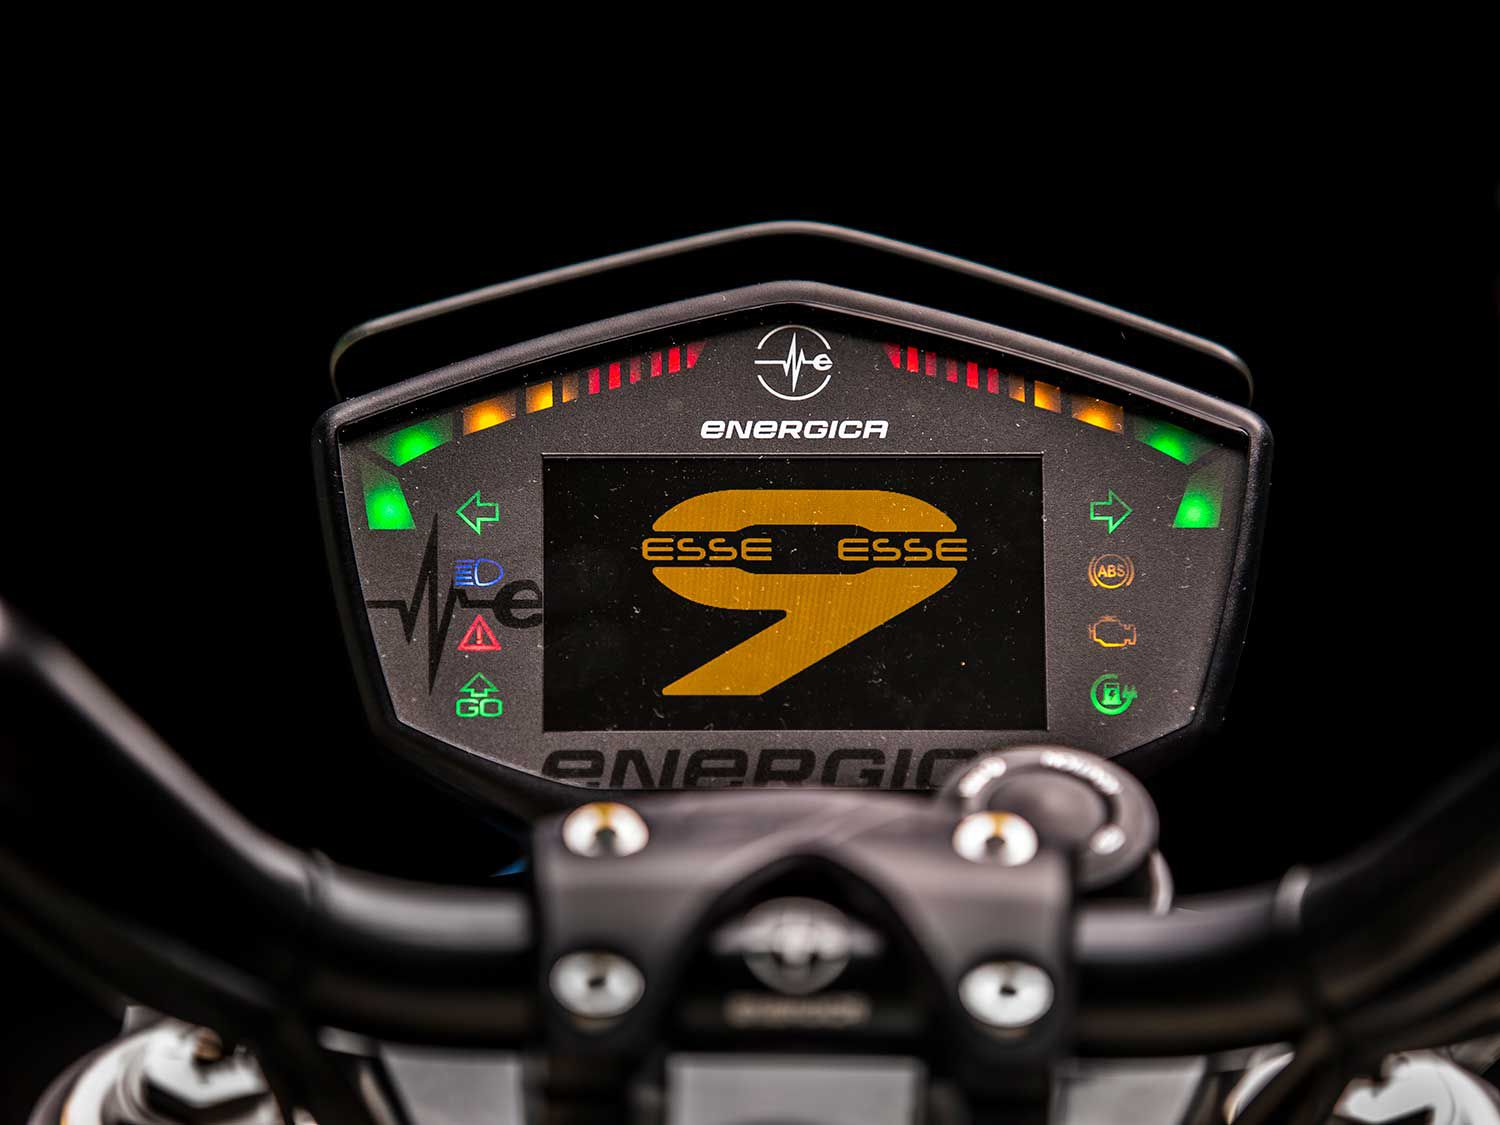 An exciting new feature incorporated into the TFT interface of the 2020 Energica Ego+ and all other models is the ProShare XT function which allows real-time monitoring of the bike's performance.